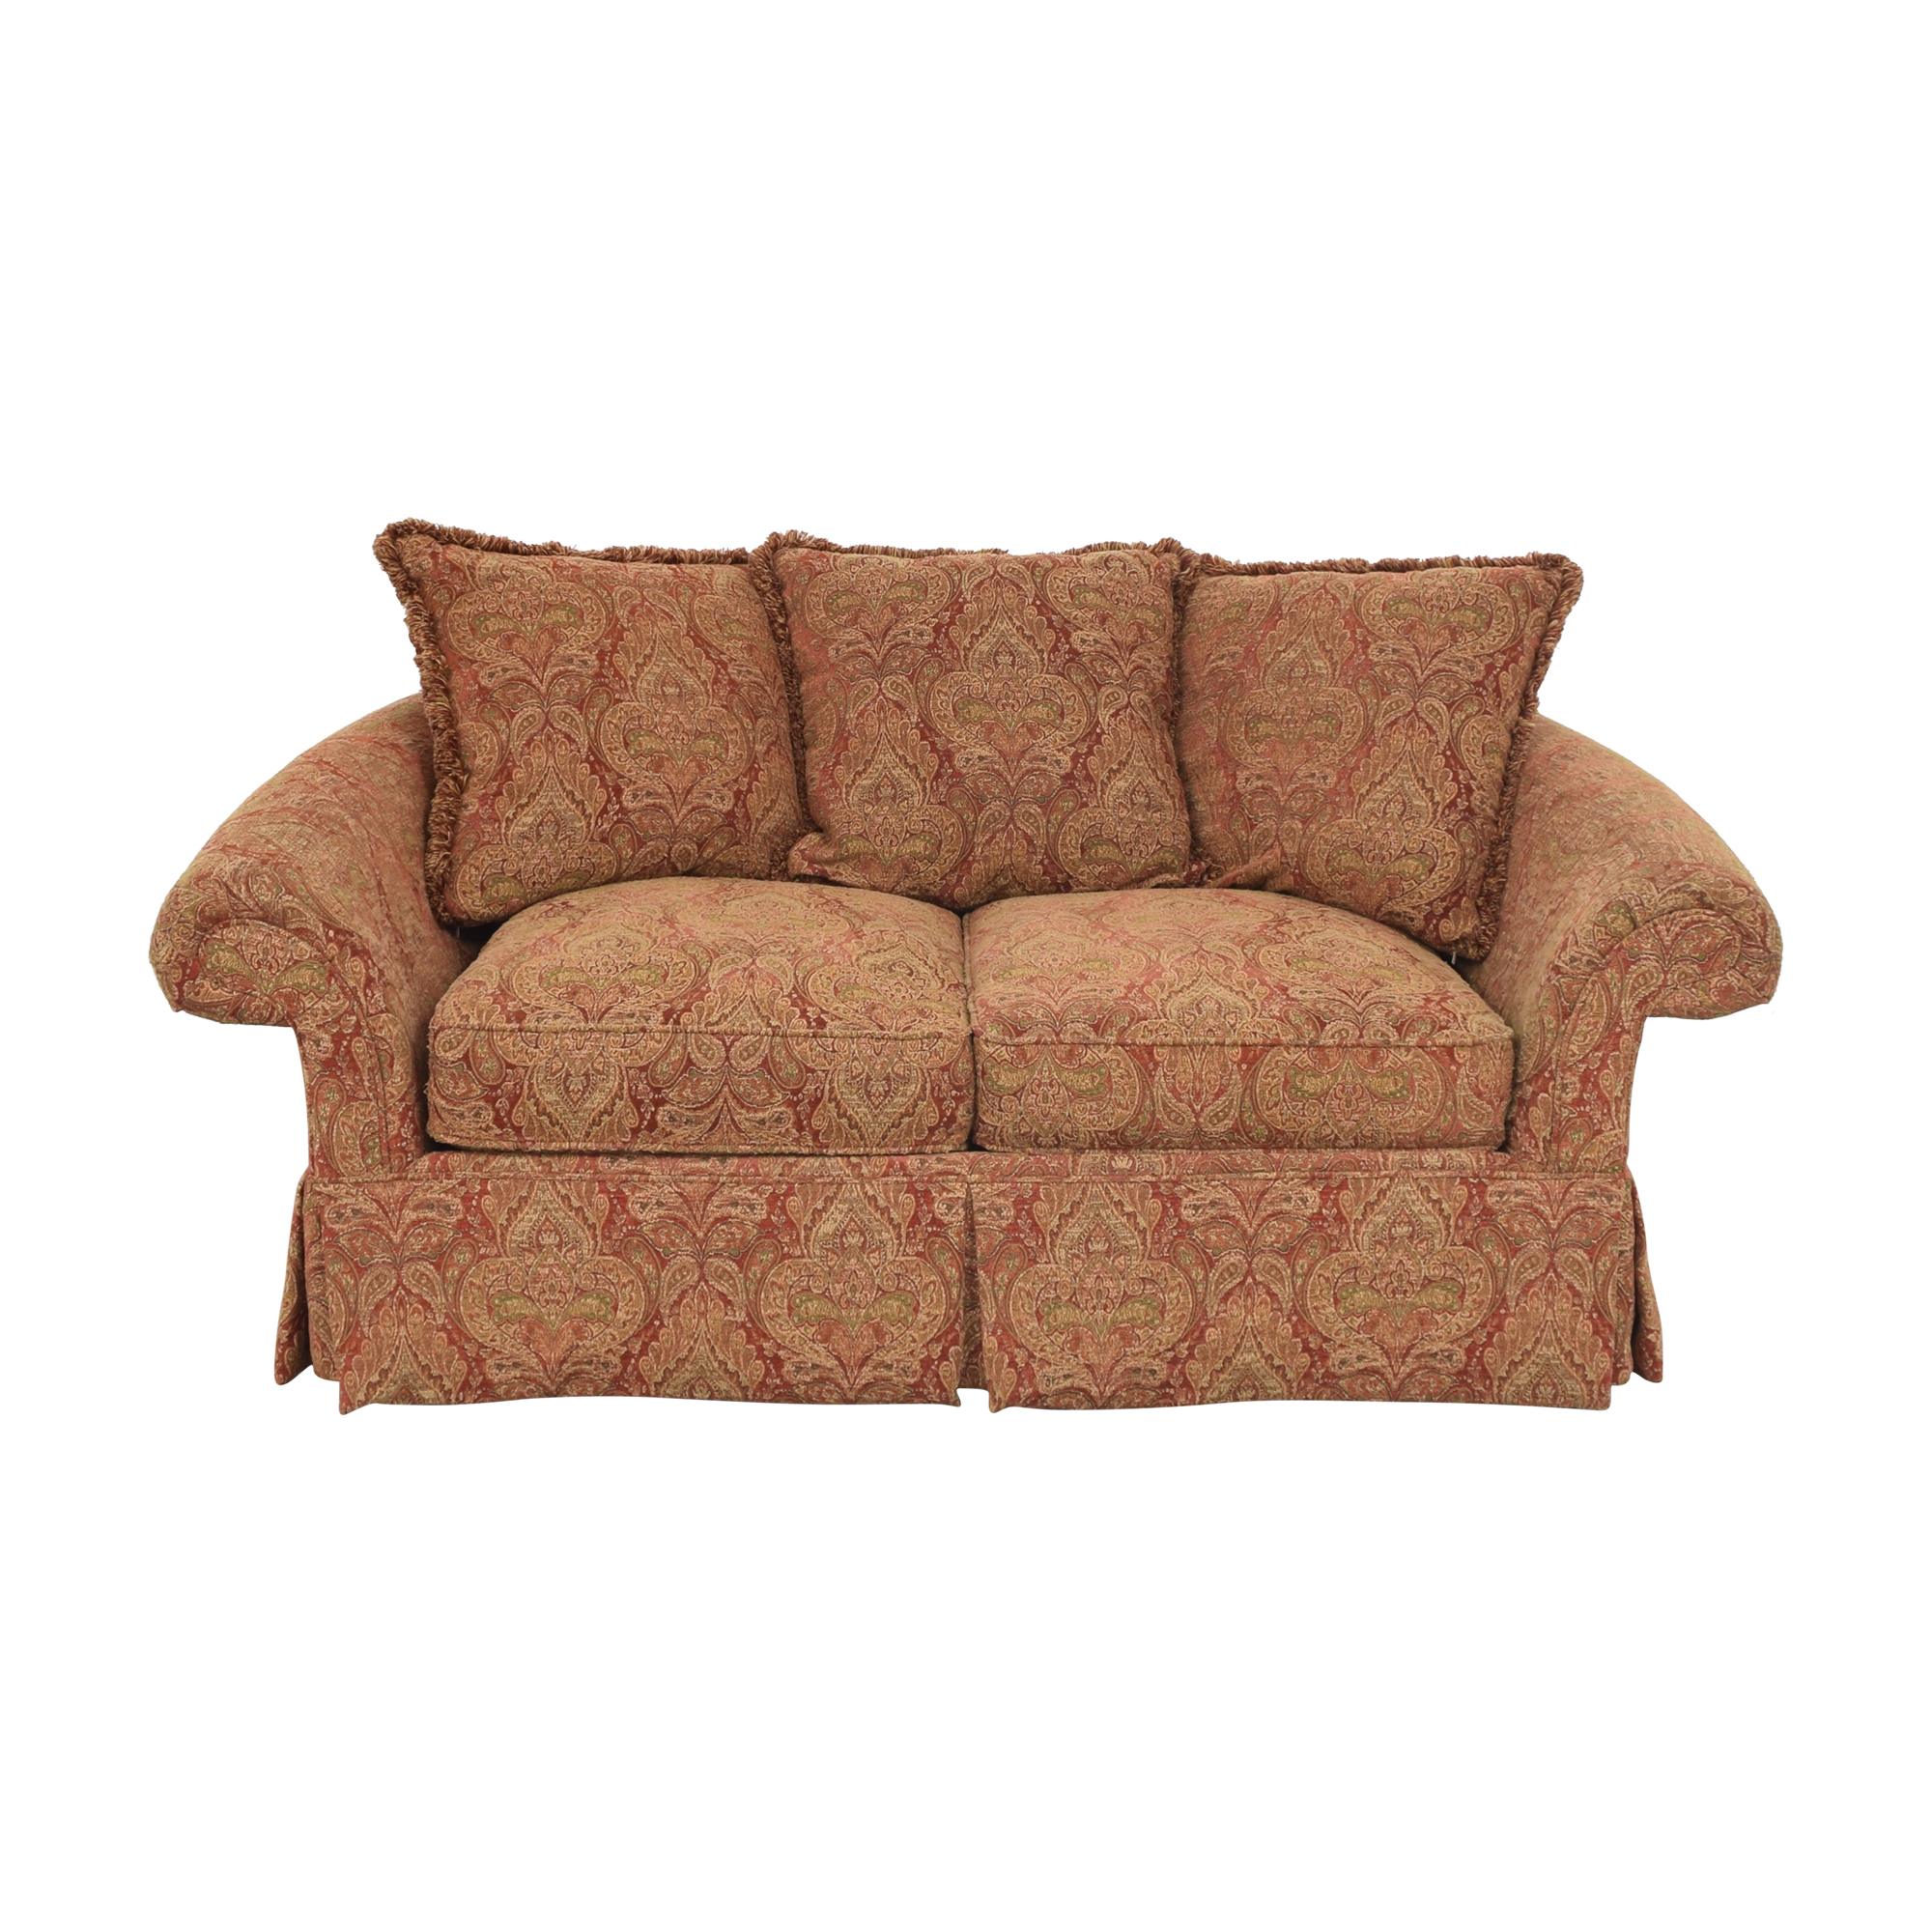 Raymour & Flanigan Raymour & Flanigan Two Cushion Skirted Sofa nj